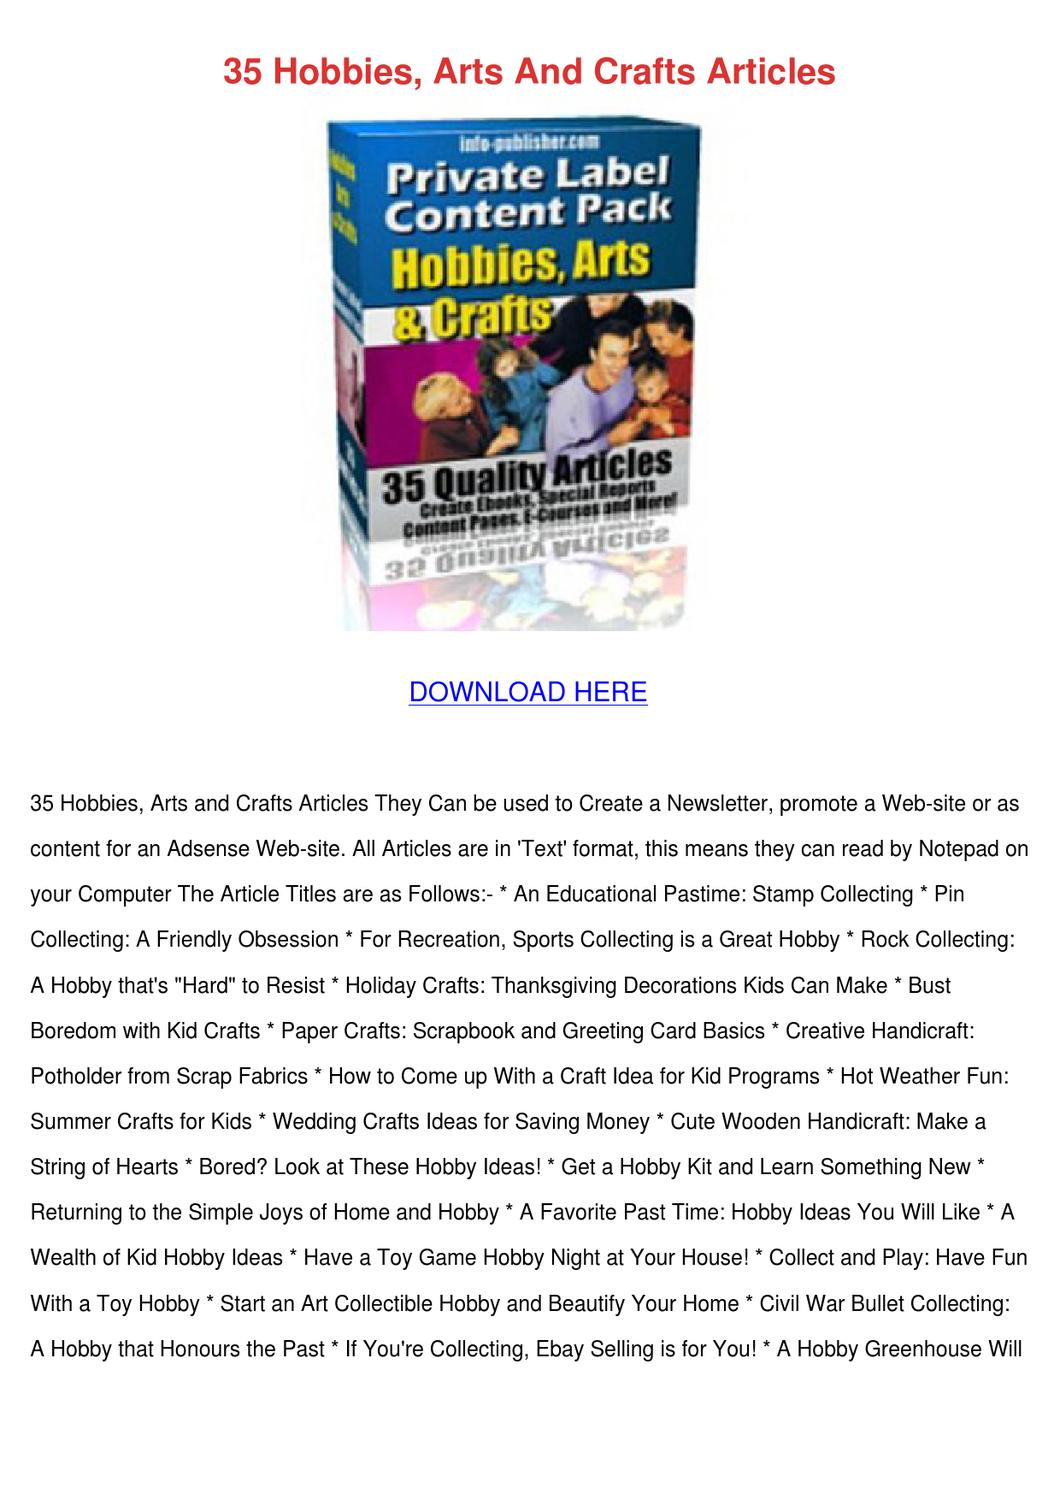 35 hobbies arts and crafts articles by ulyssessosa issuu for Crafts and hobbies ideas